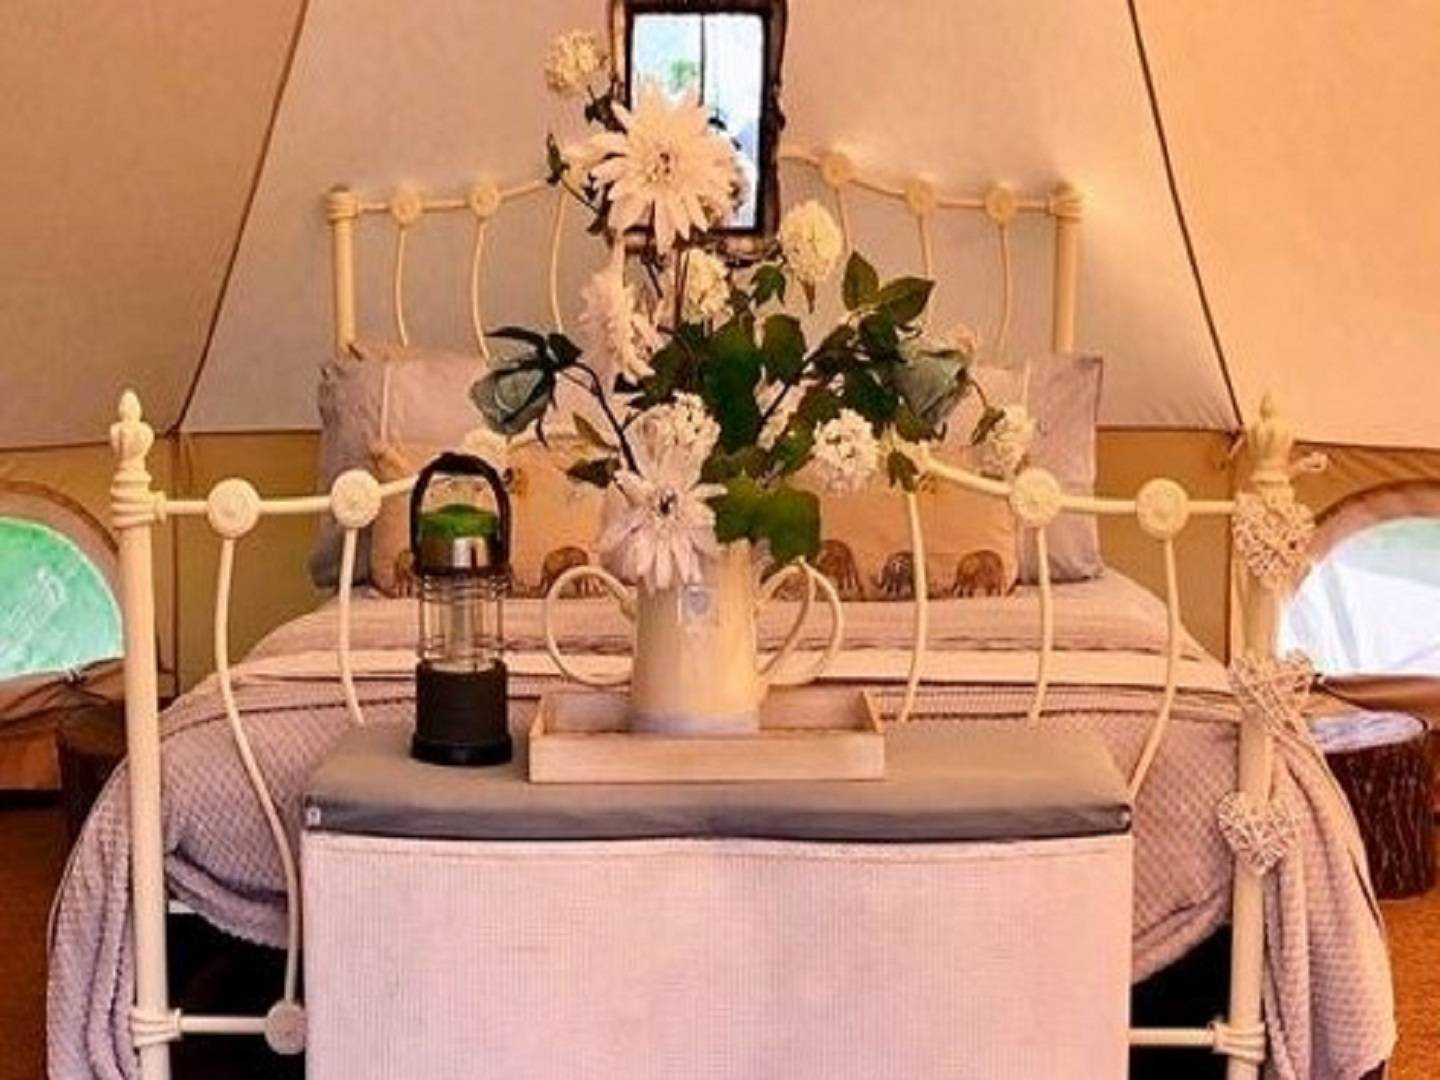 A room filled with furniture and vase of flowers on a table at Lane House B&B.